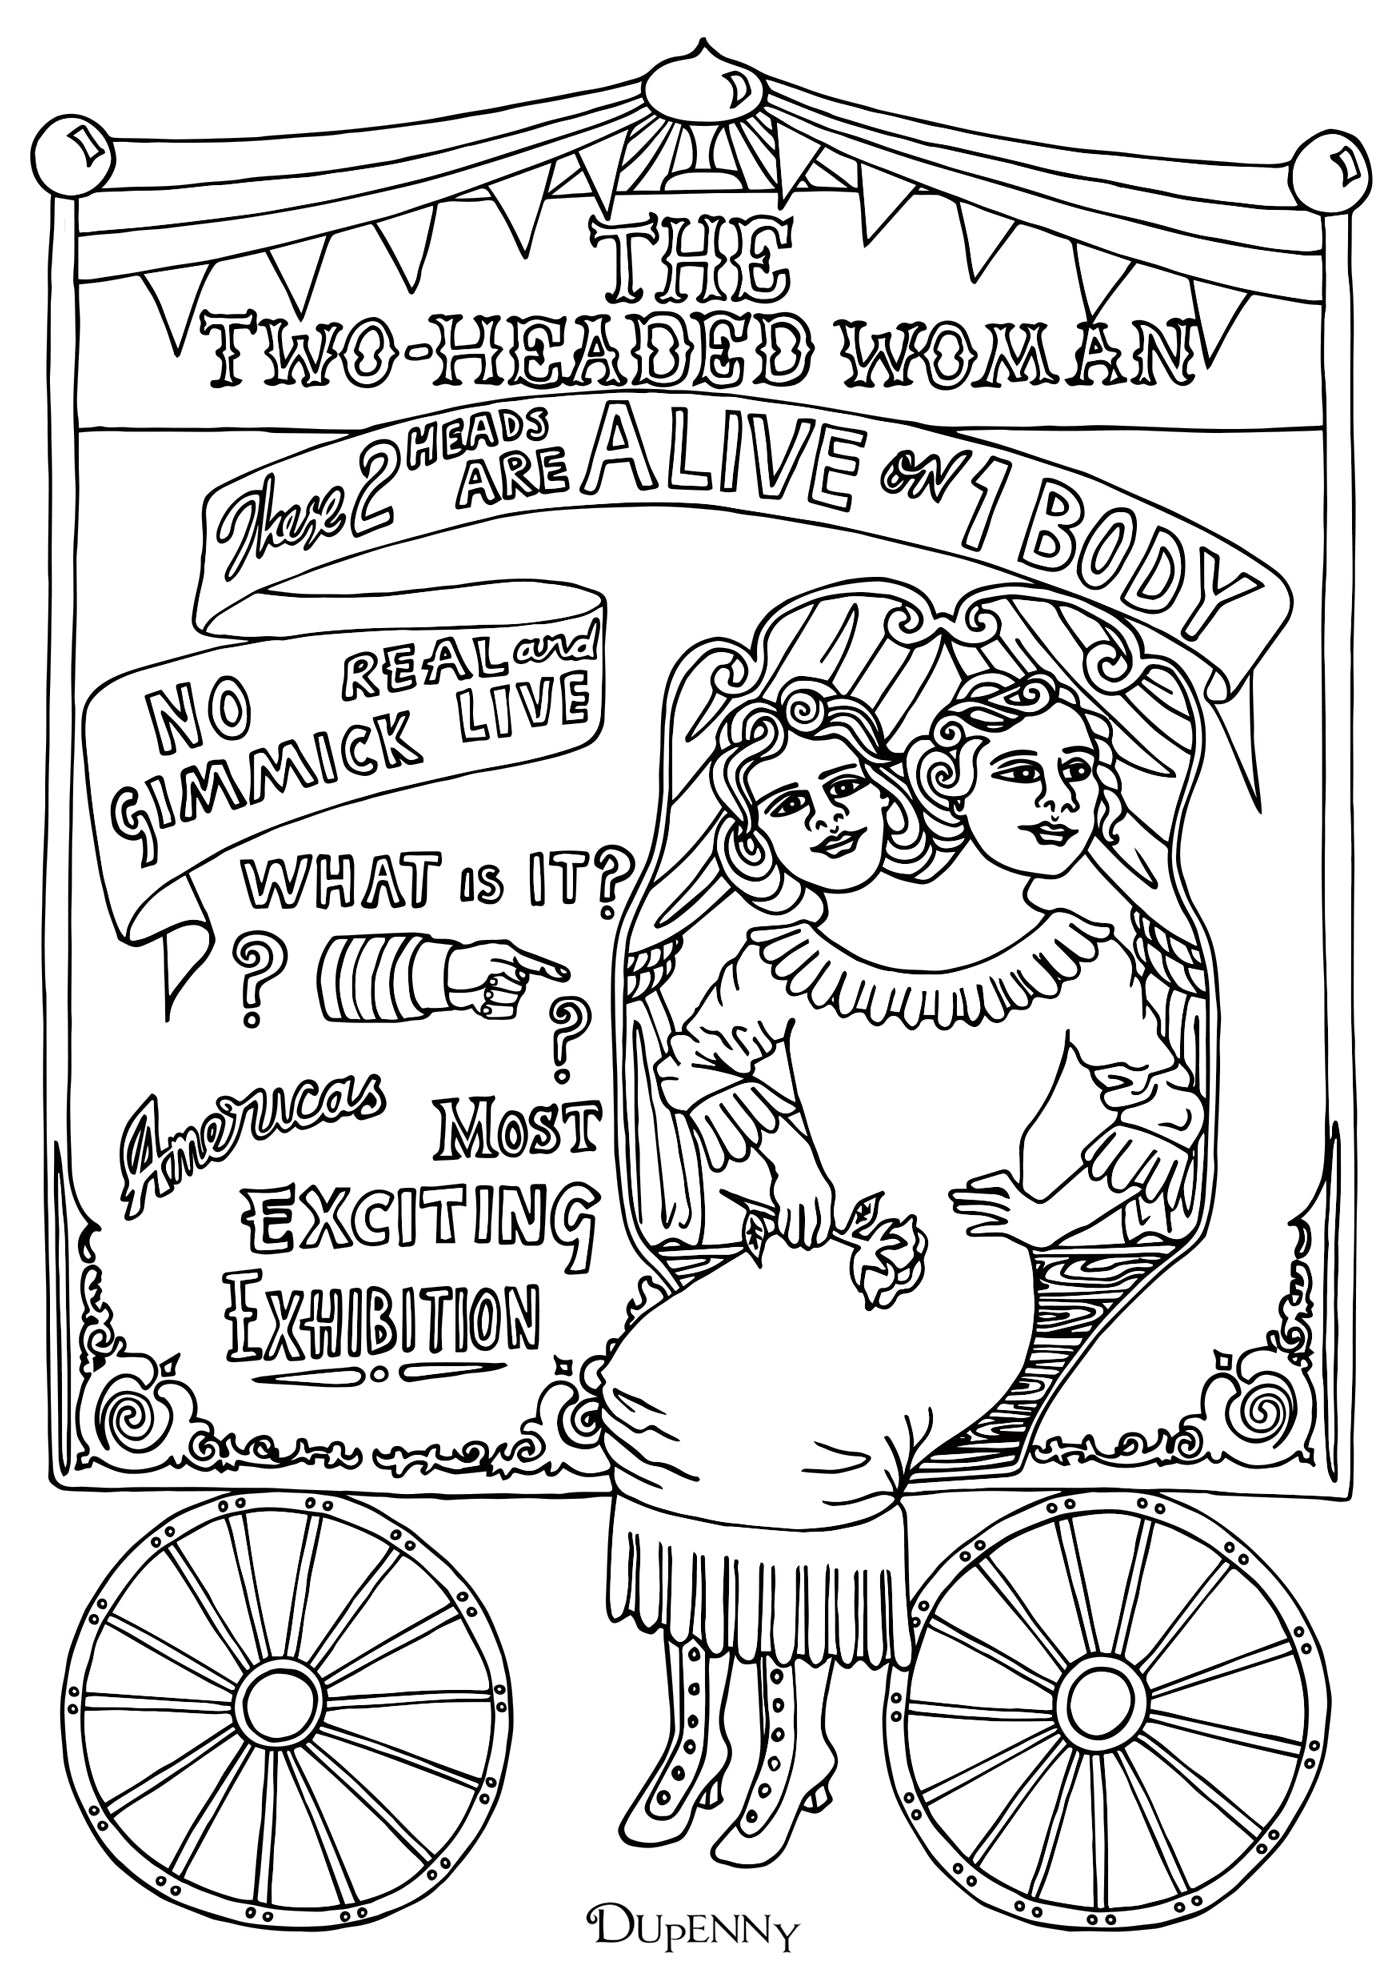 Dupenny A4 Coney Island '2-Headed Woman' Colouring Poster FREE